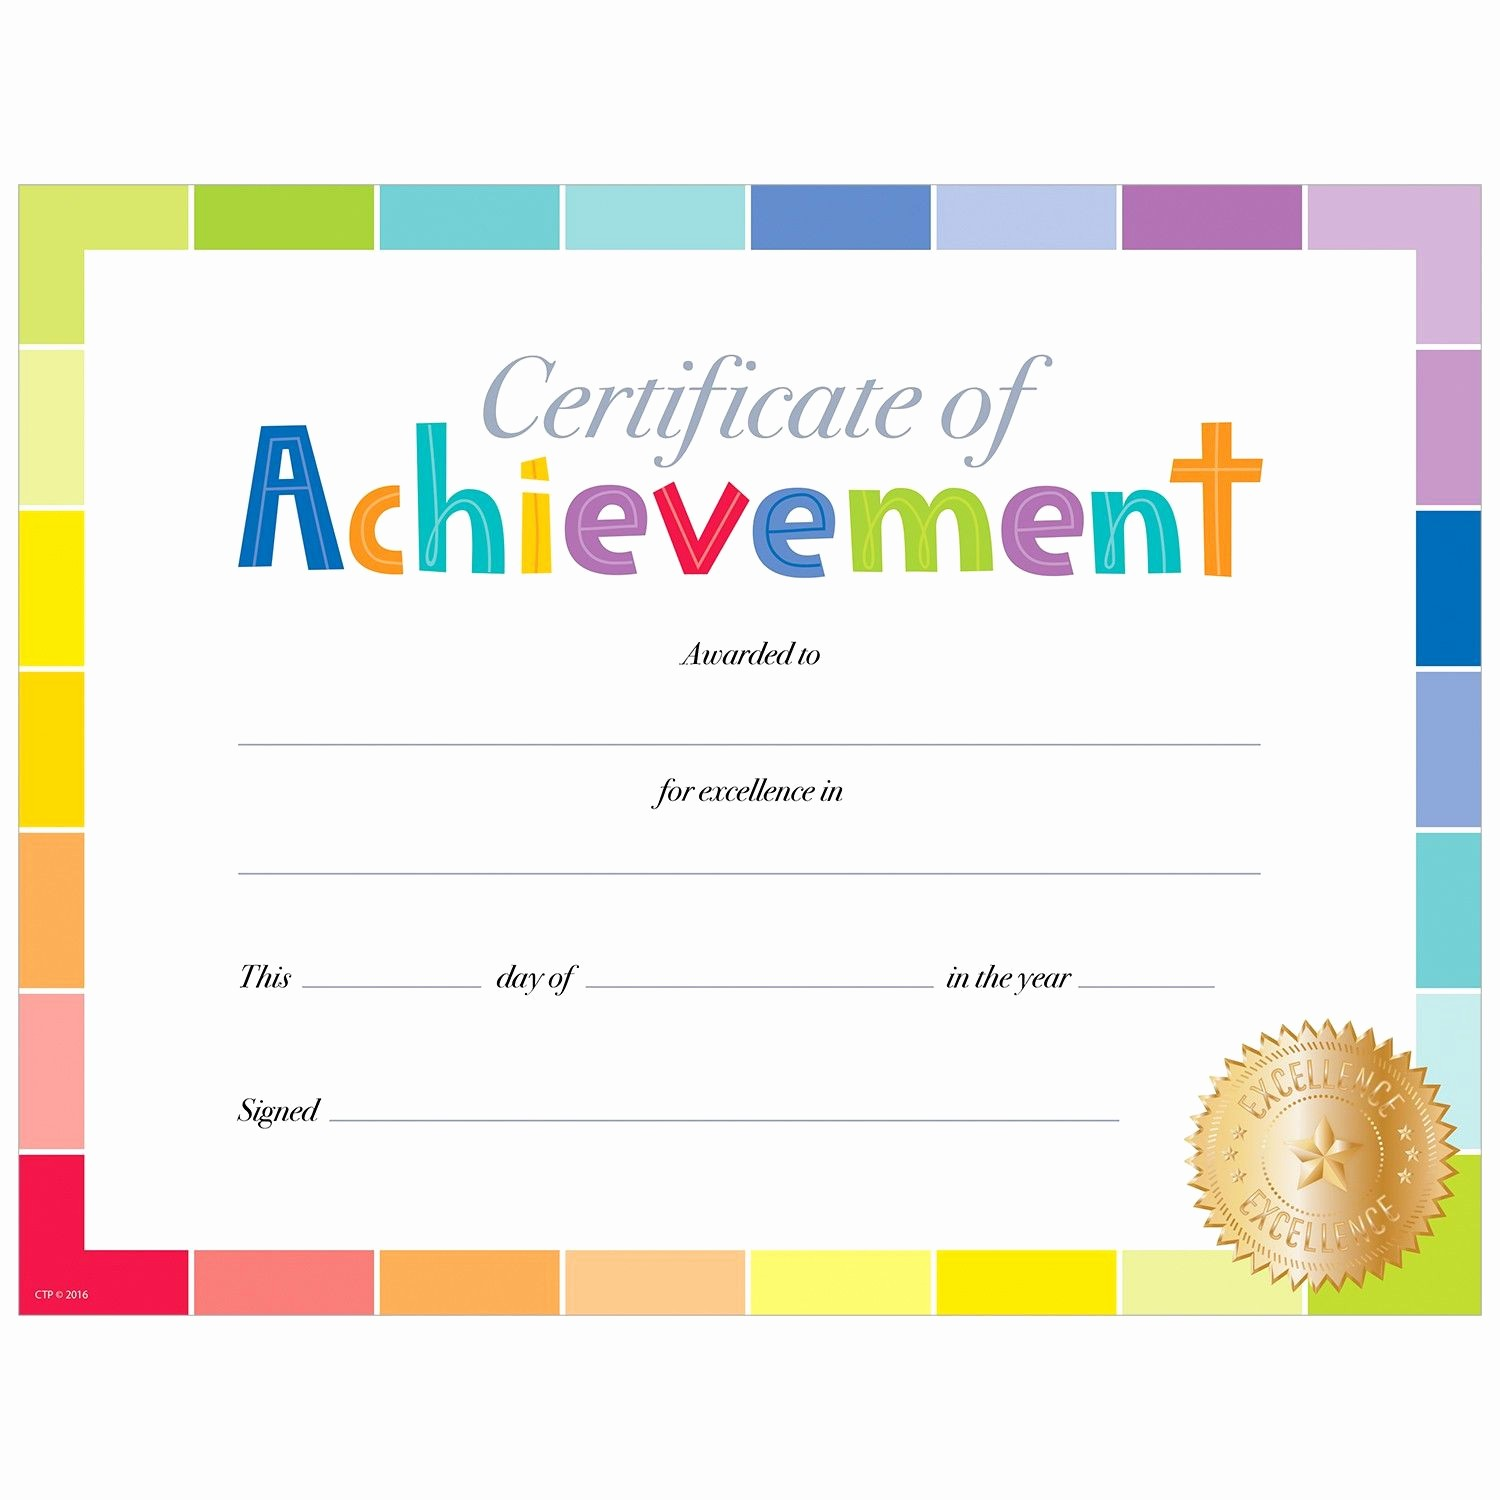 Certificates Of Achievement Templates Free Inspirational Award Certificates Kids Art Google Search